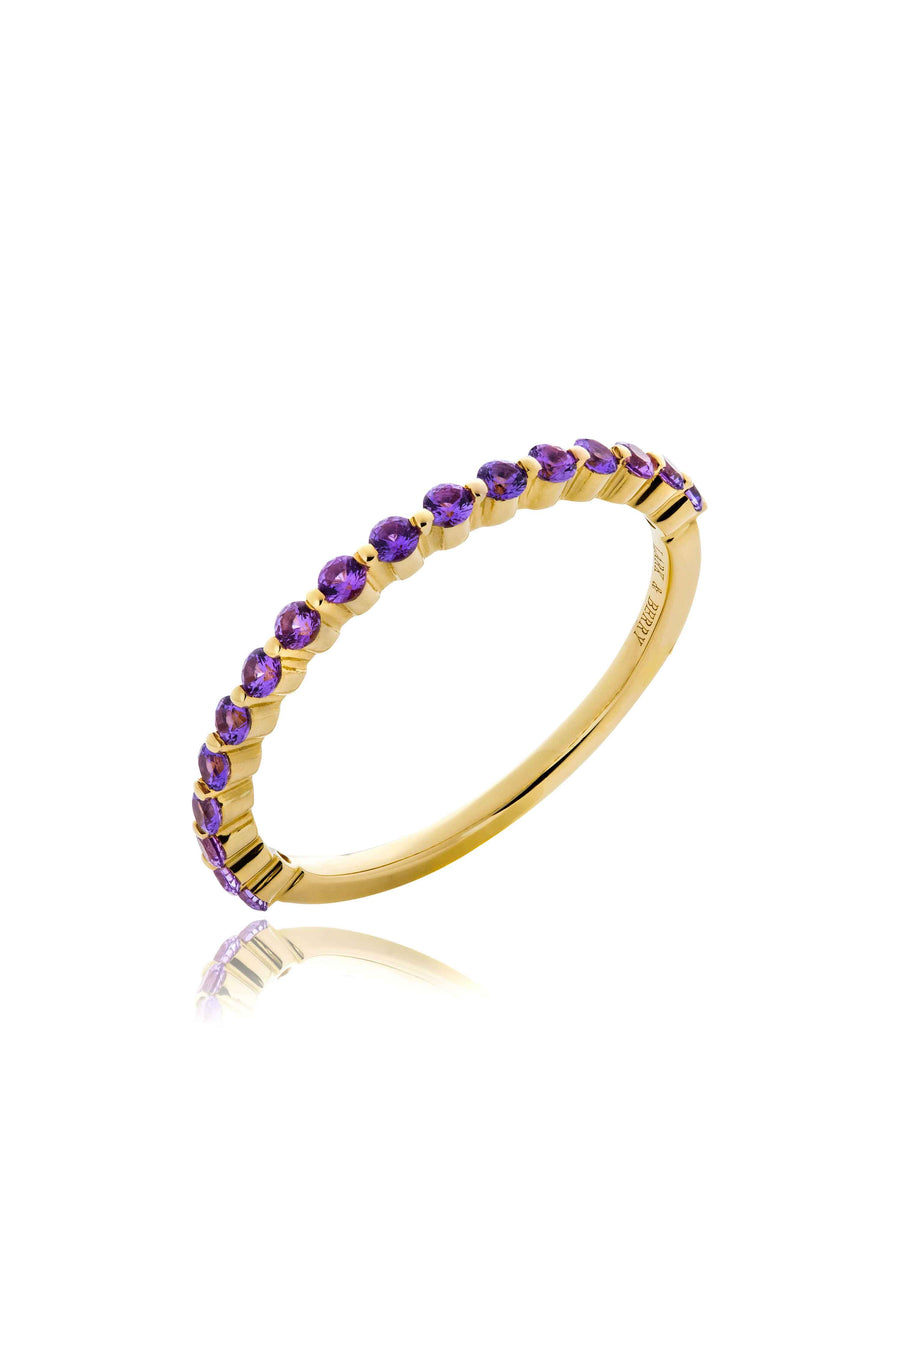 Modernist Stackable Fancy Purple Sapphire Ring in 14K Gold